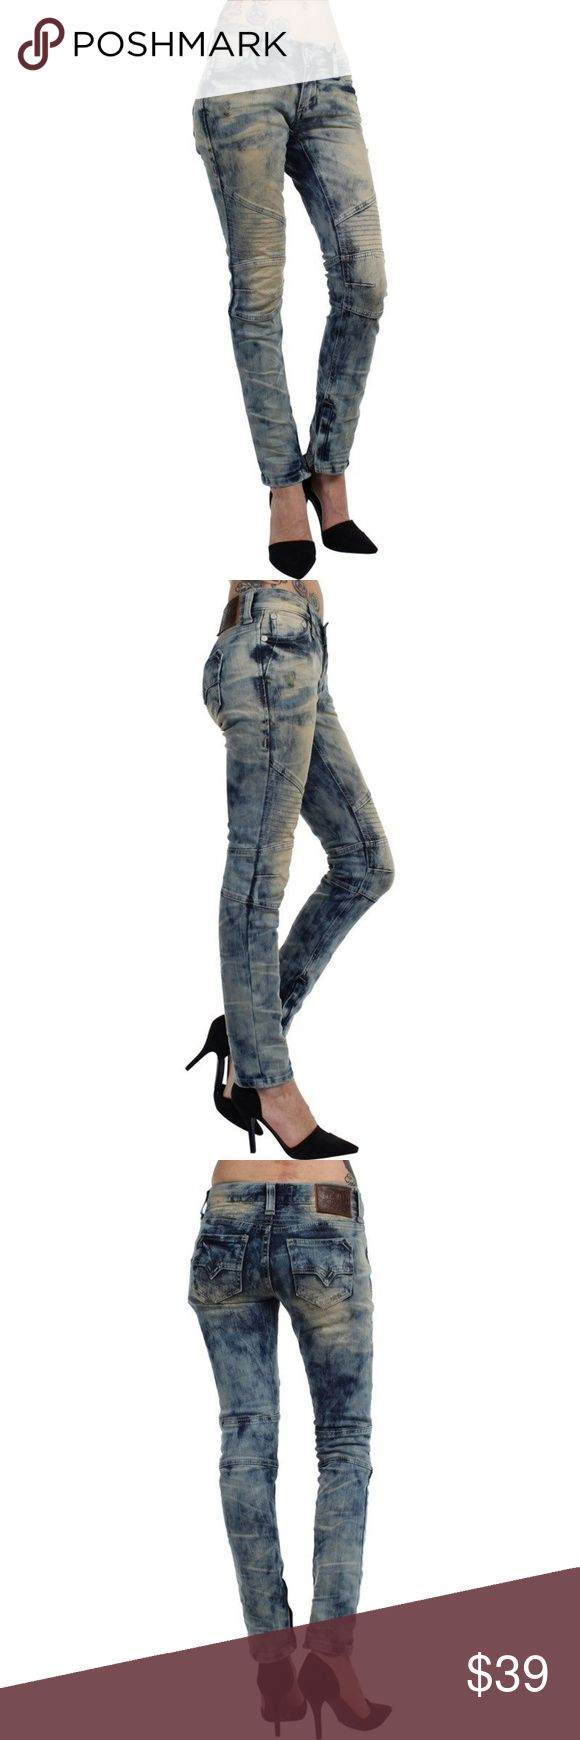 AFFLICTION Raquel Moto Jeans!! Size 26 NEW--NO TAGS---POPULAR Jeans From AFFLICTION!!  Distressed--Zipper Detail at your Back Pockets *****14 inches across the Top, 7.5 inches for your Rise and 30 inches for your Inseam*******NICE!! Affliction Jeans